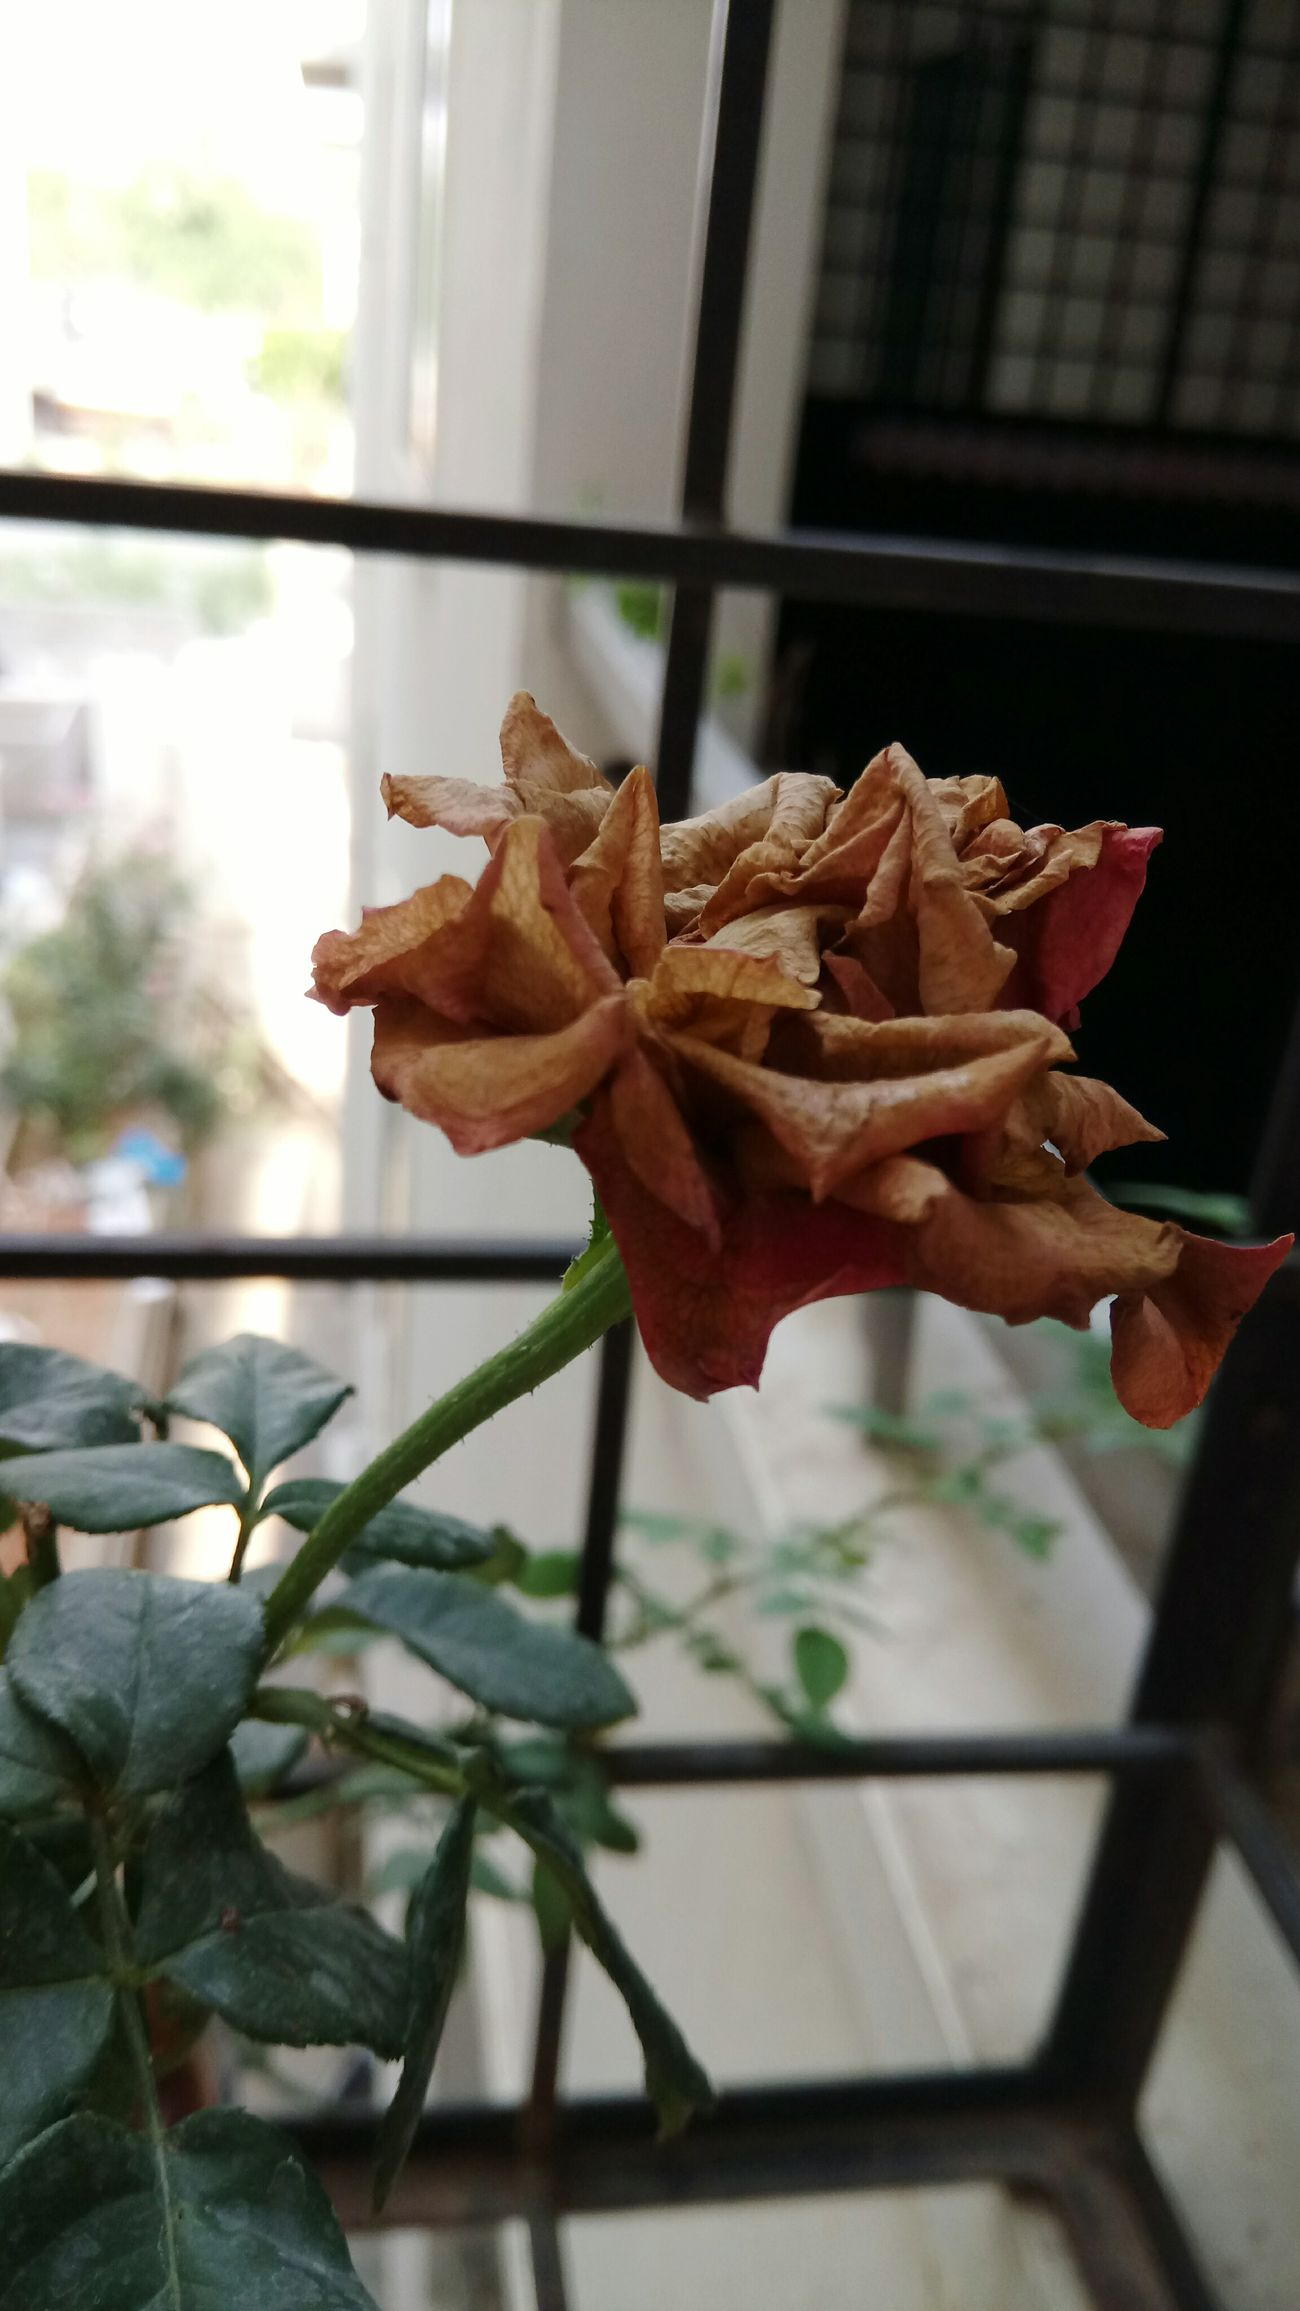 Beautifully withered Mobilephotography Mobile Photography Sony Xperia Photography. Flower Fragility Nature Close-up Roses Rose - Flower Withered Flower Withered Beauty Withered Plants Beauty Of Decay Beauty In Nature Flowers,Plants & Garden Flowers Colors Of Nature